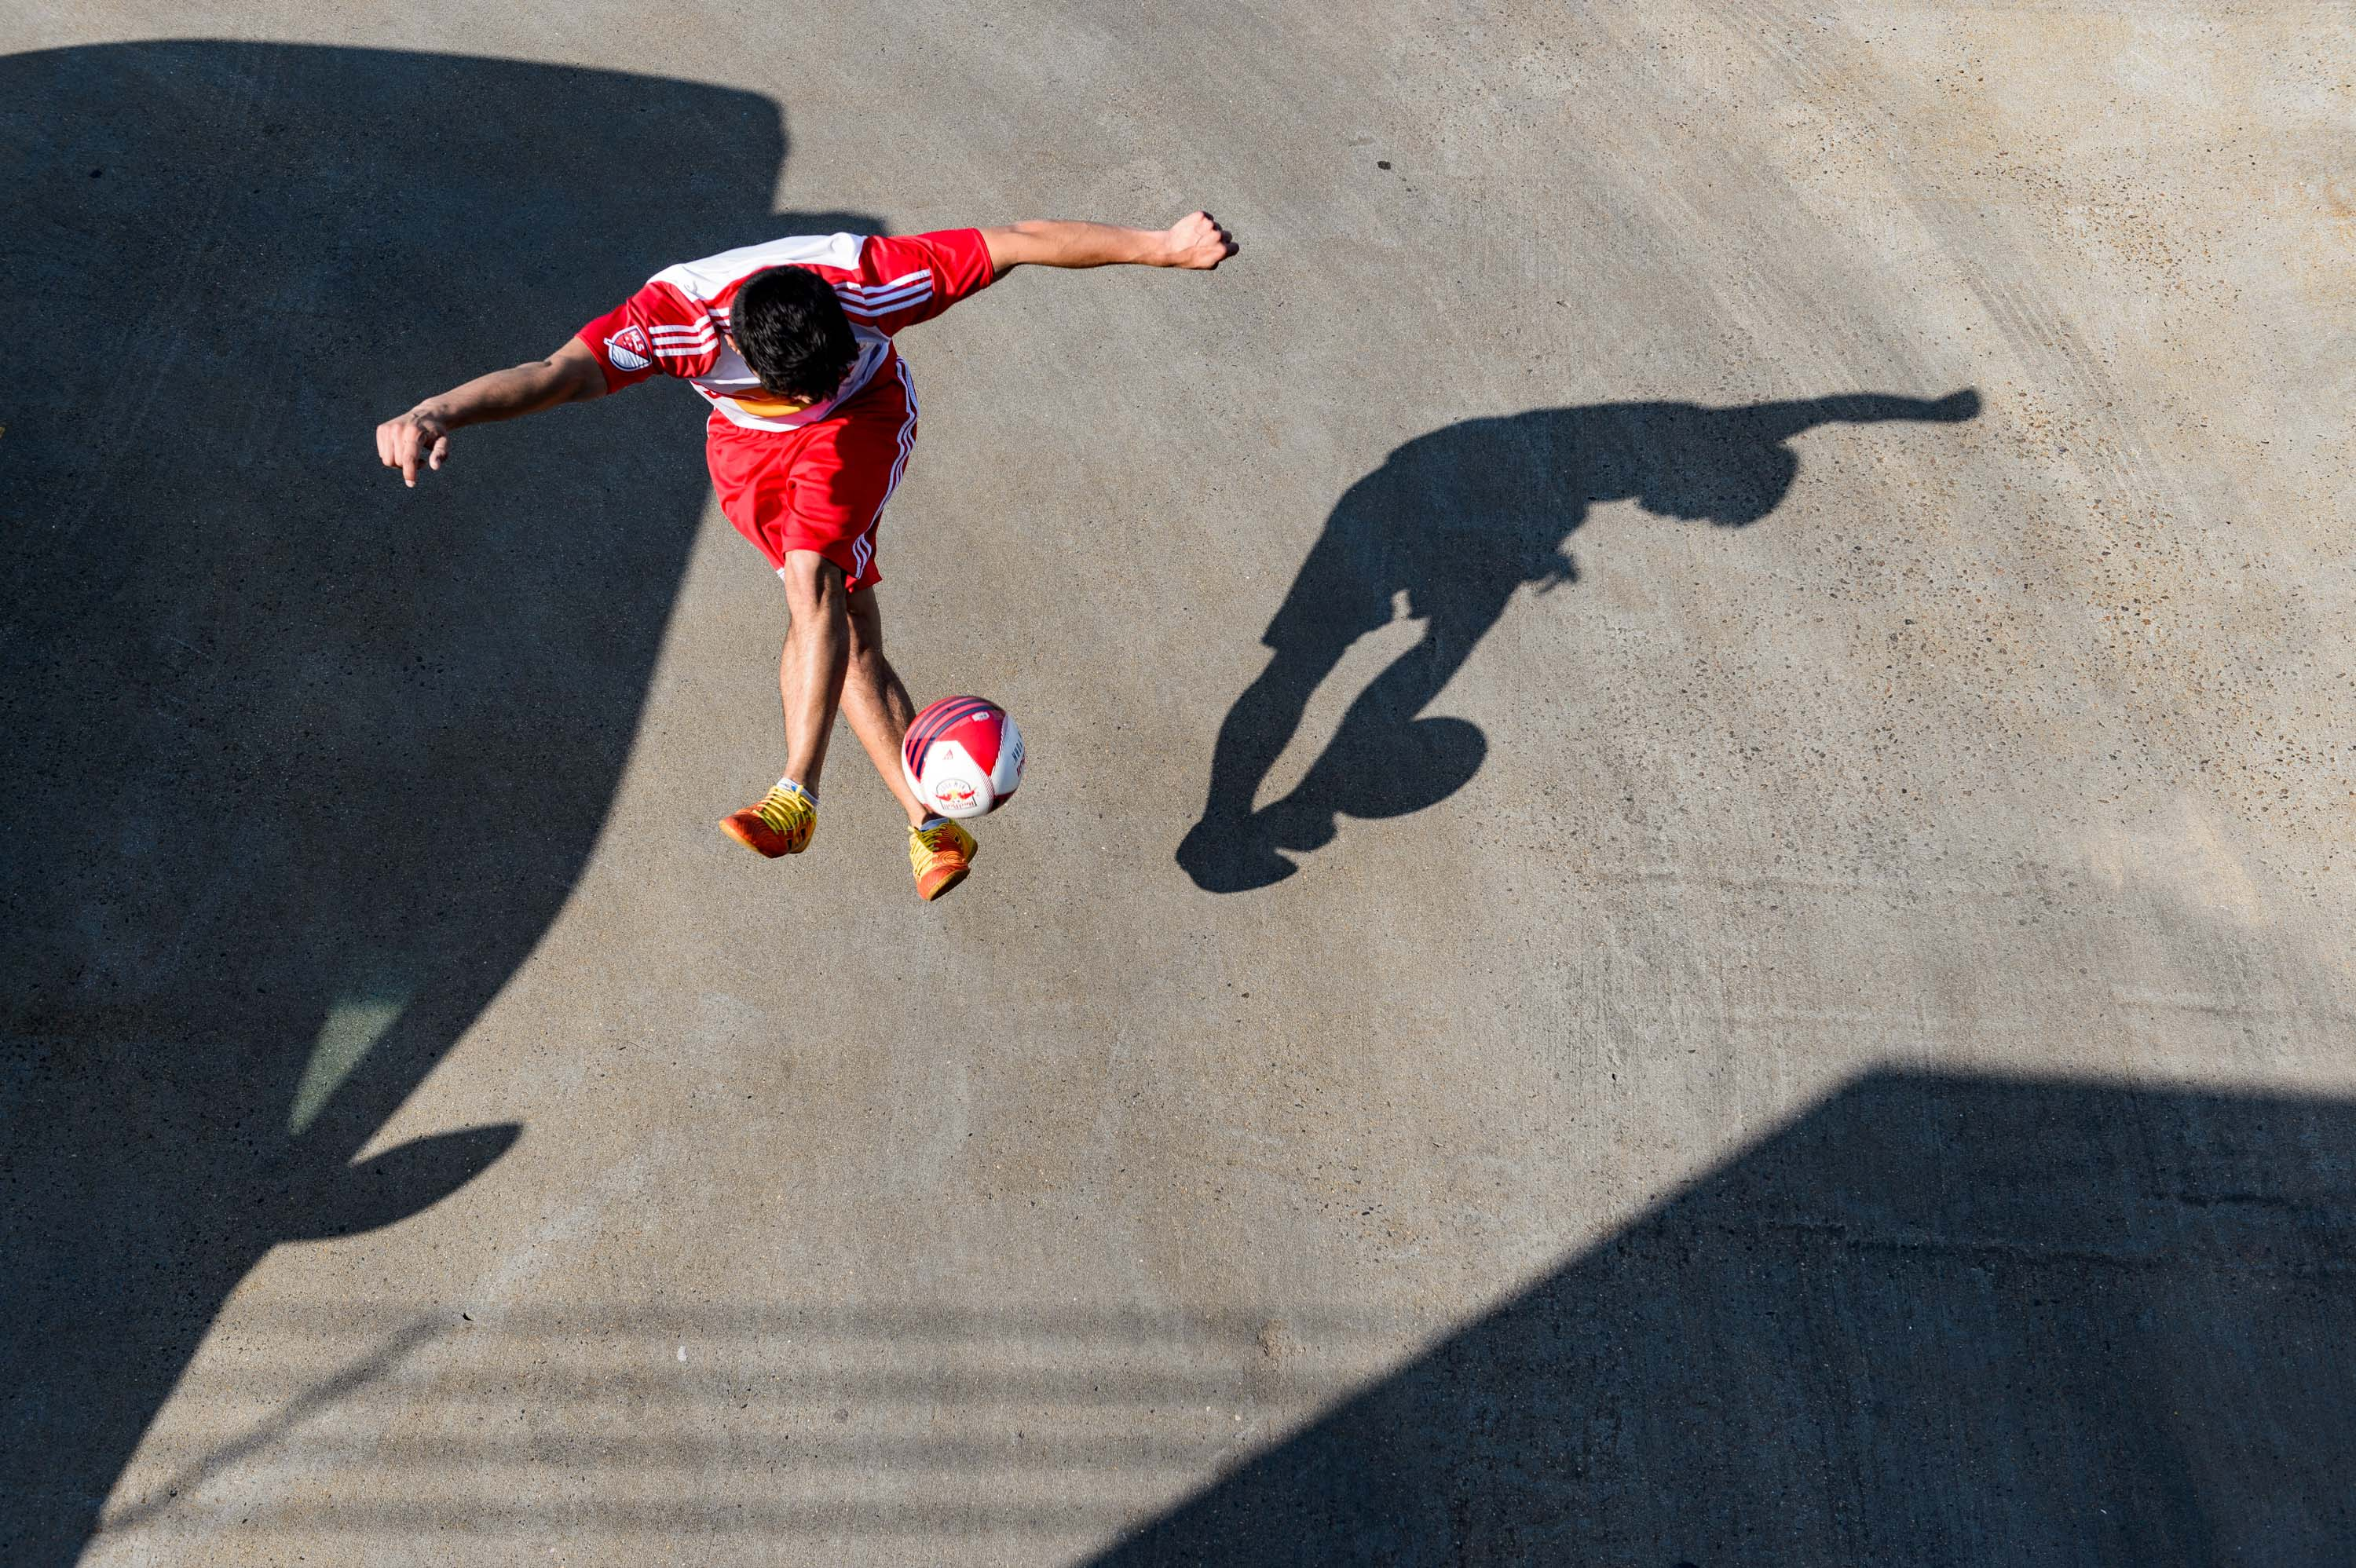 Freestyle Soccer for The New York Red Bulls  - Greg Mionske - Advertising and Editorial Photographer in Denver